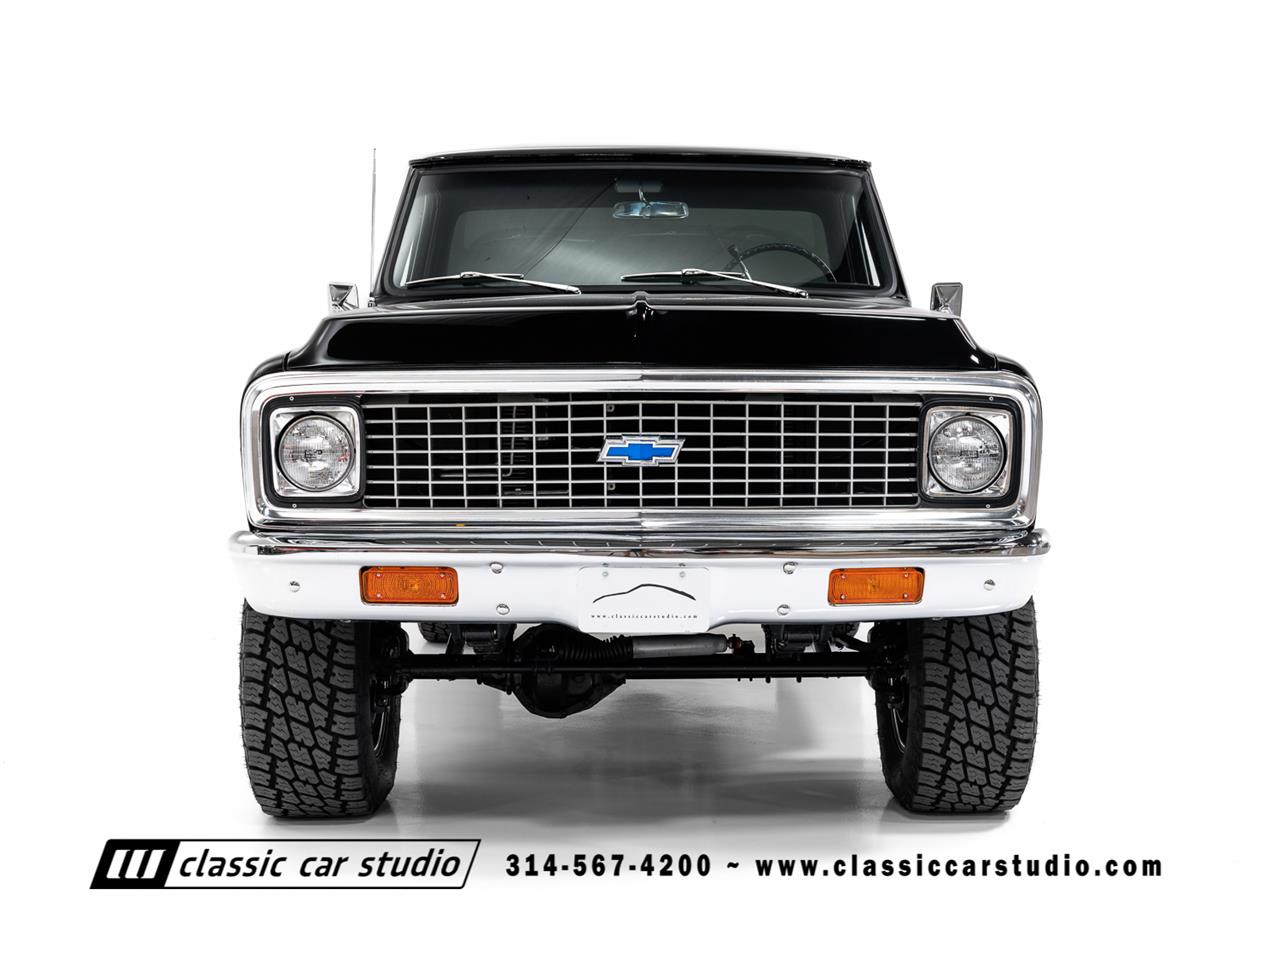 Large Picture of Classic '71 Chevrolet K-10 located in SAINT LOUIS Missouri - $59,900.00 - OLTK